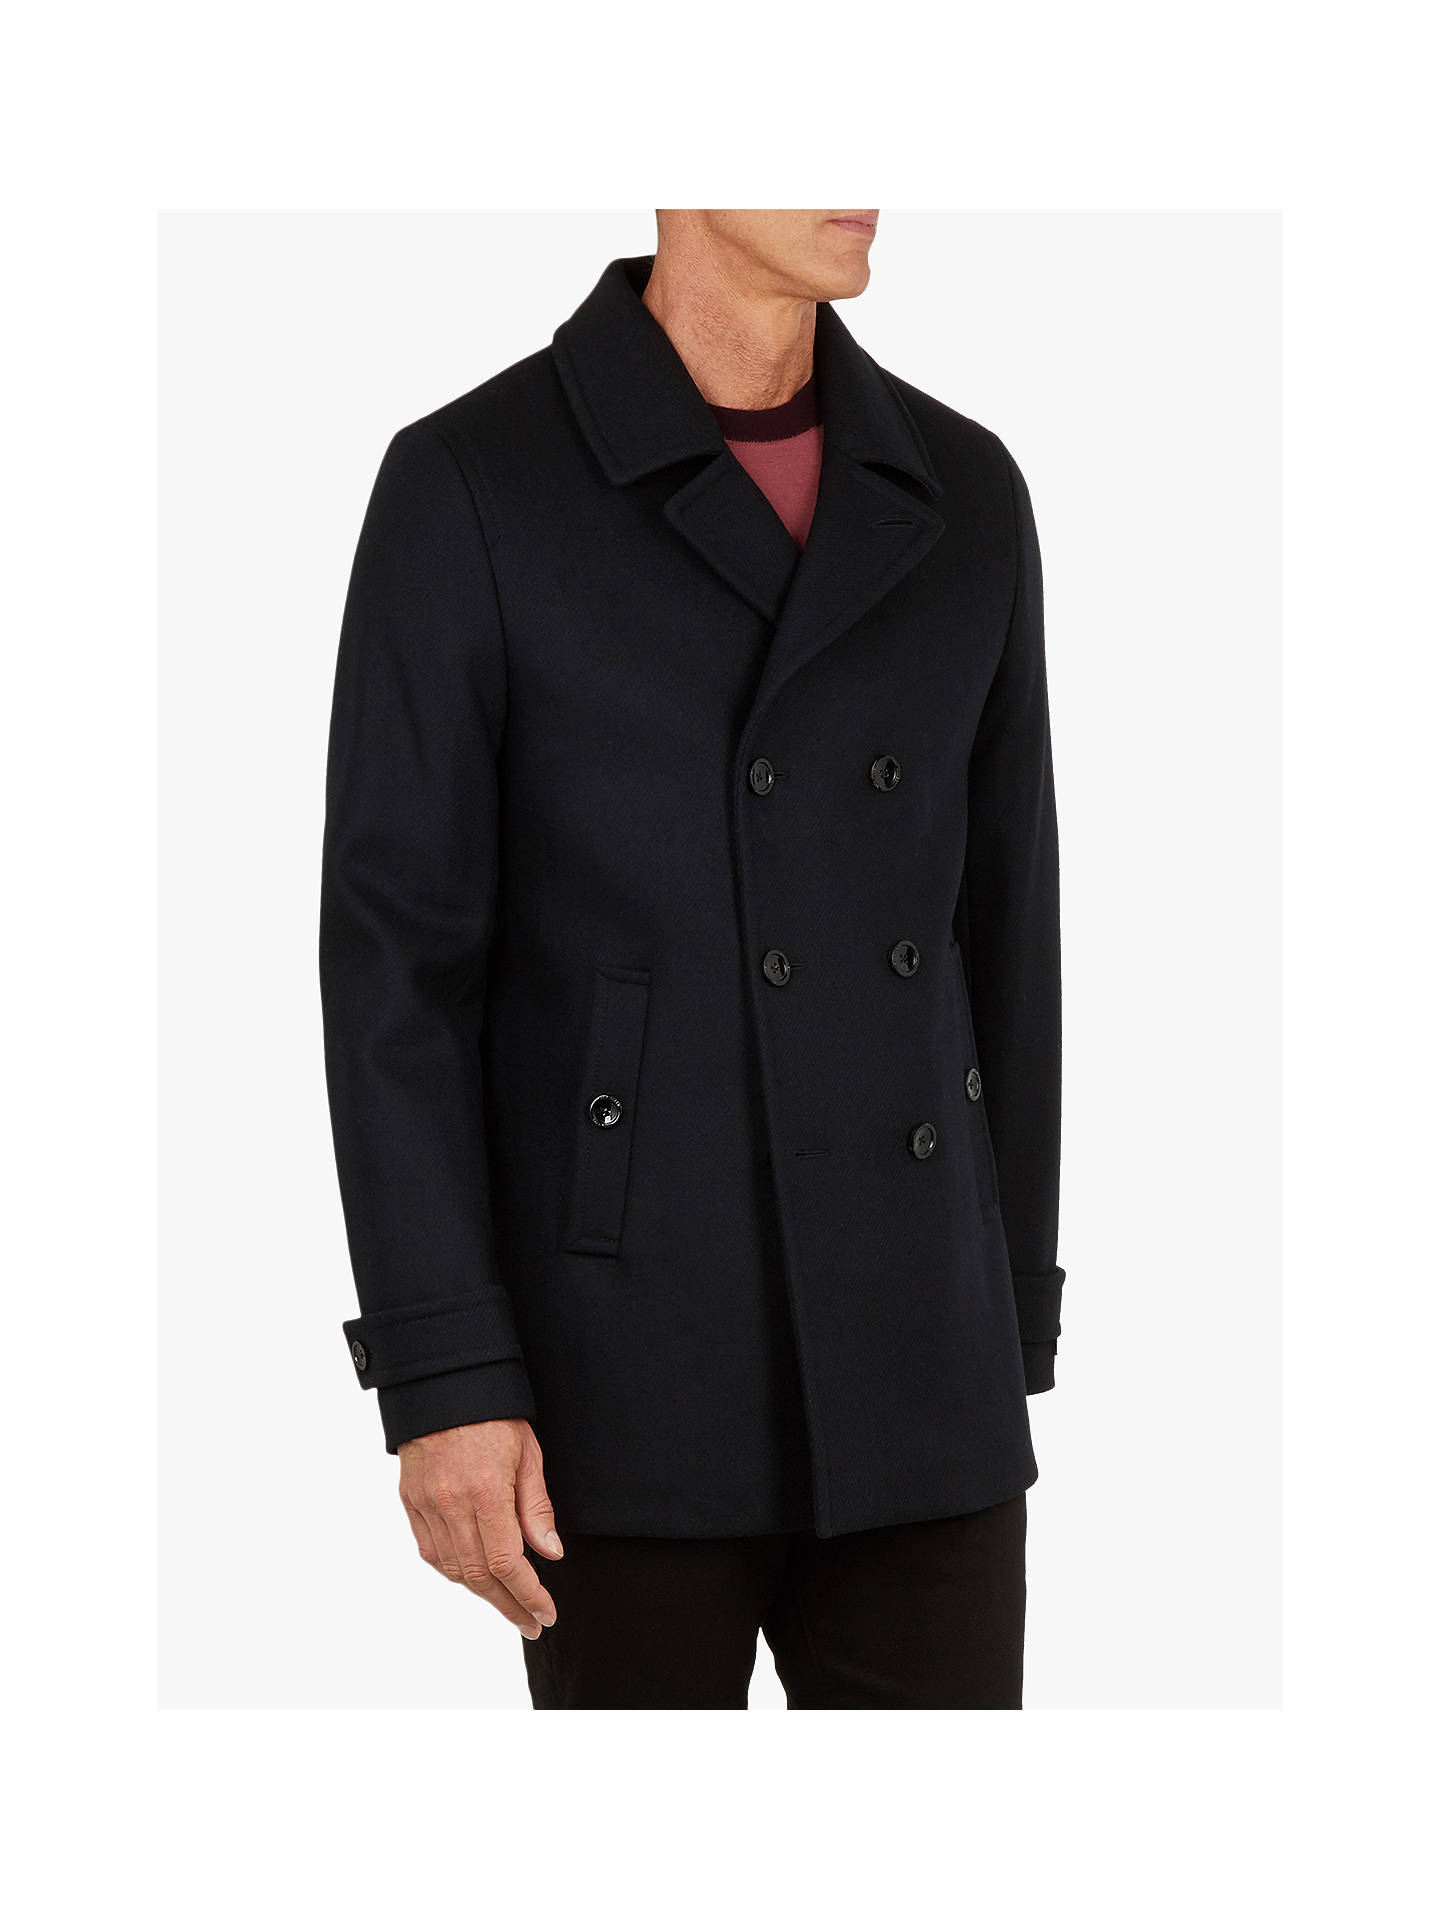 69081f81f6b2a Buy Ted Baker T for Tall Grilld Peacoat